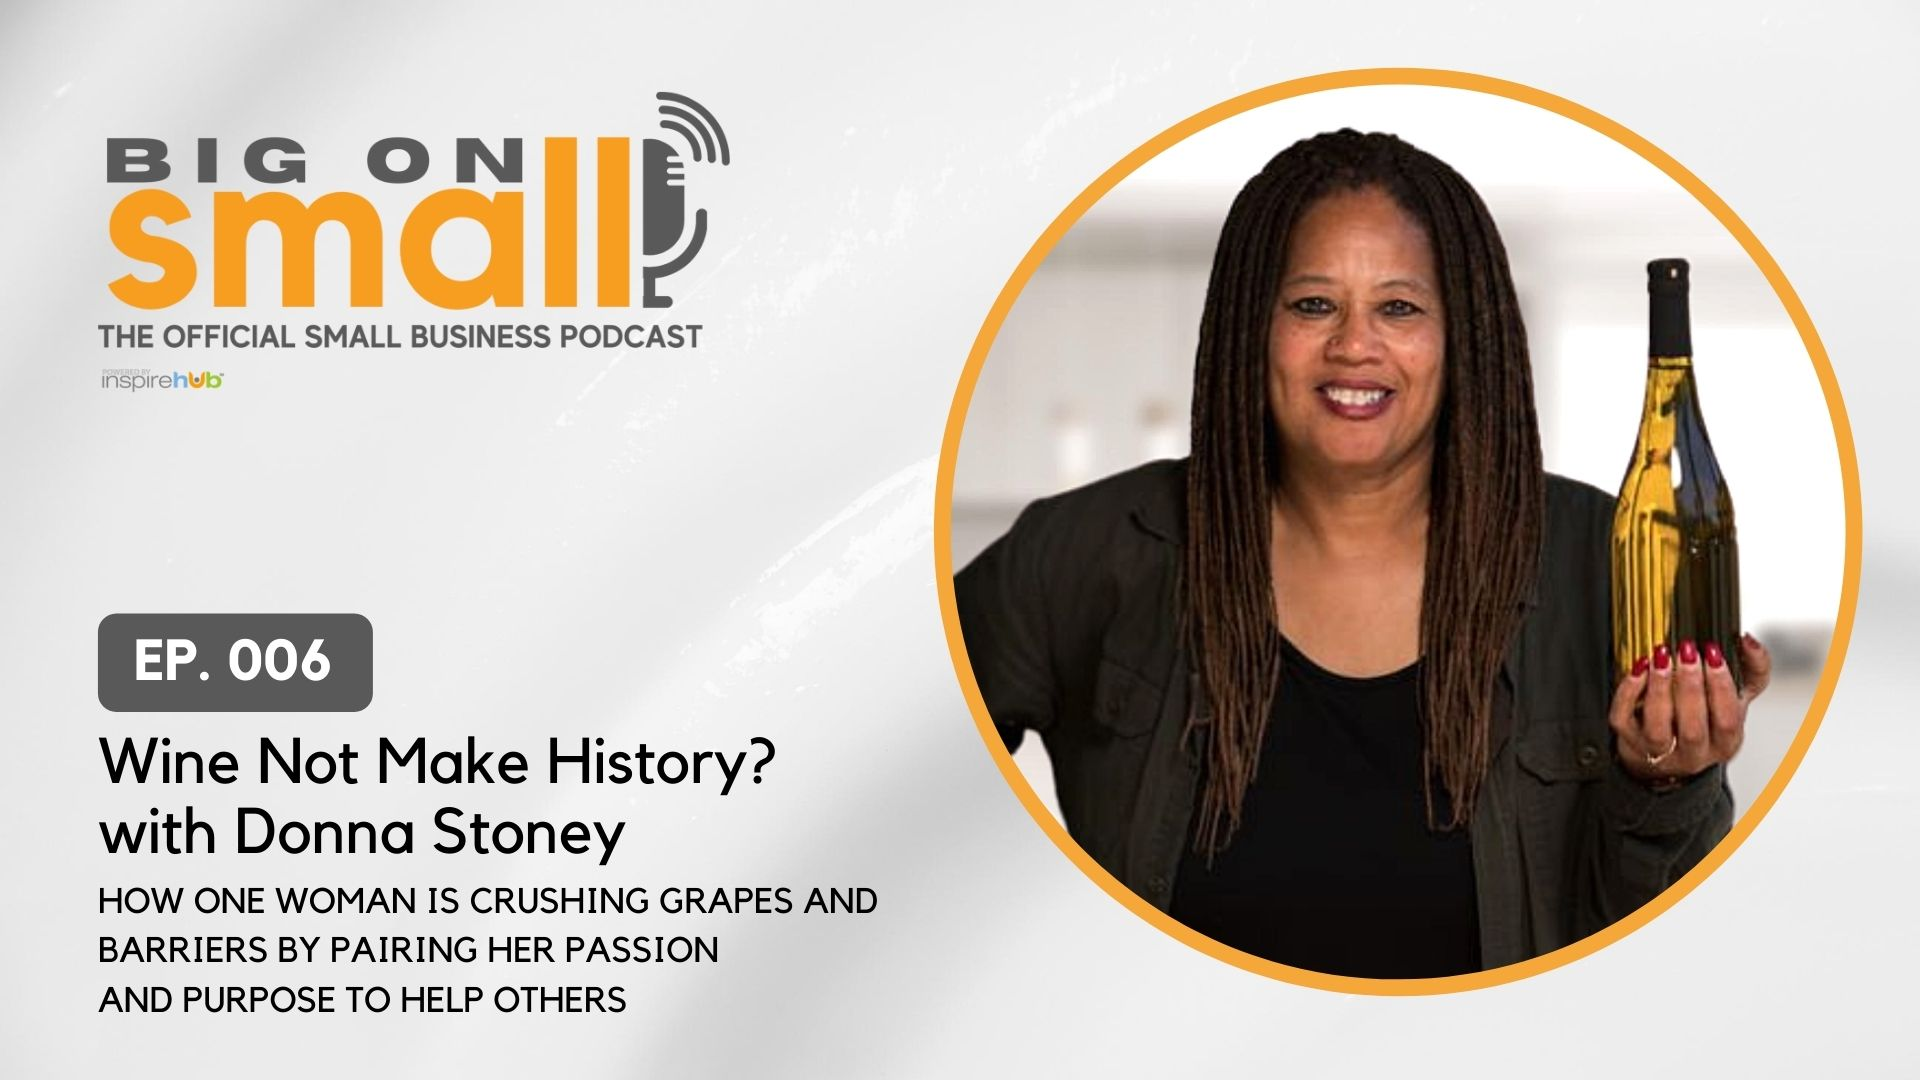 Big on Small Podcast Episode 6: Wine Not Make History? With Donna Stoney